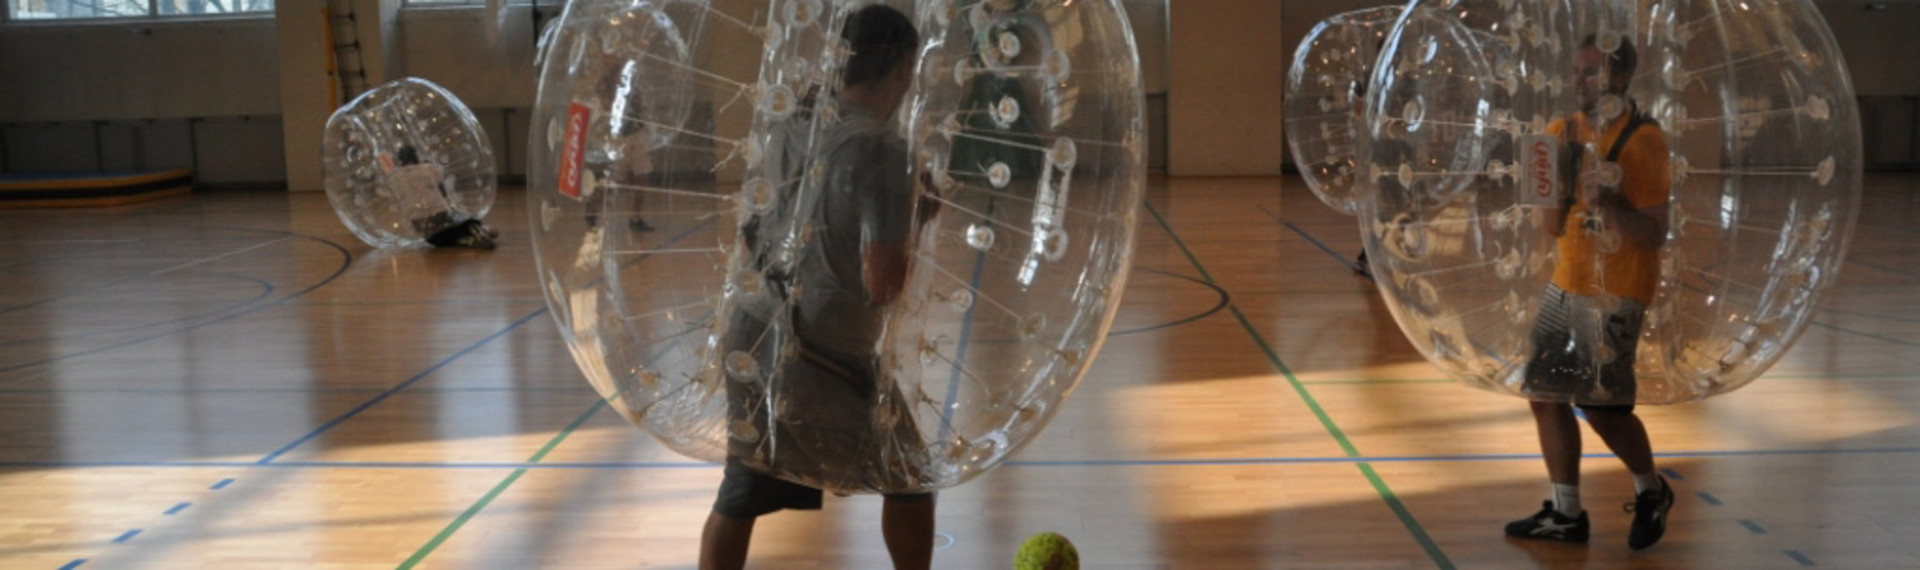 Krakow Bubble Football image